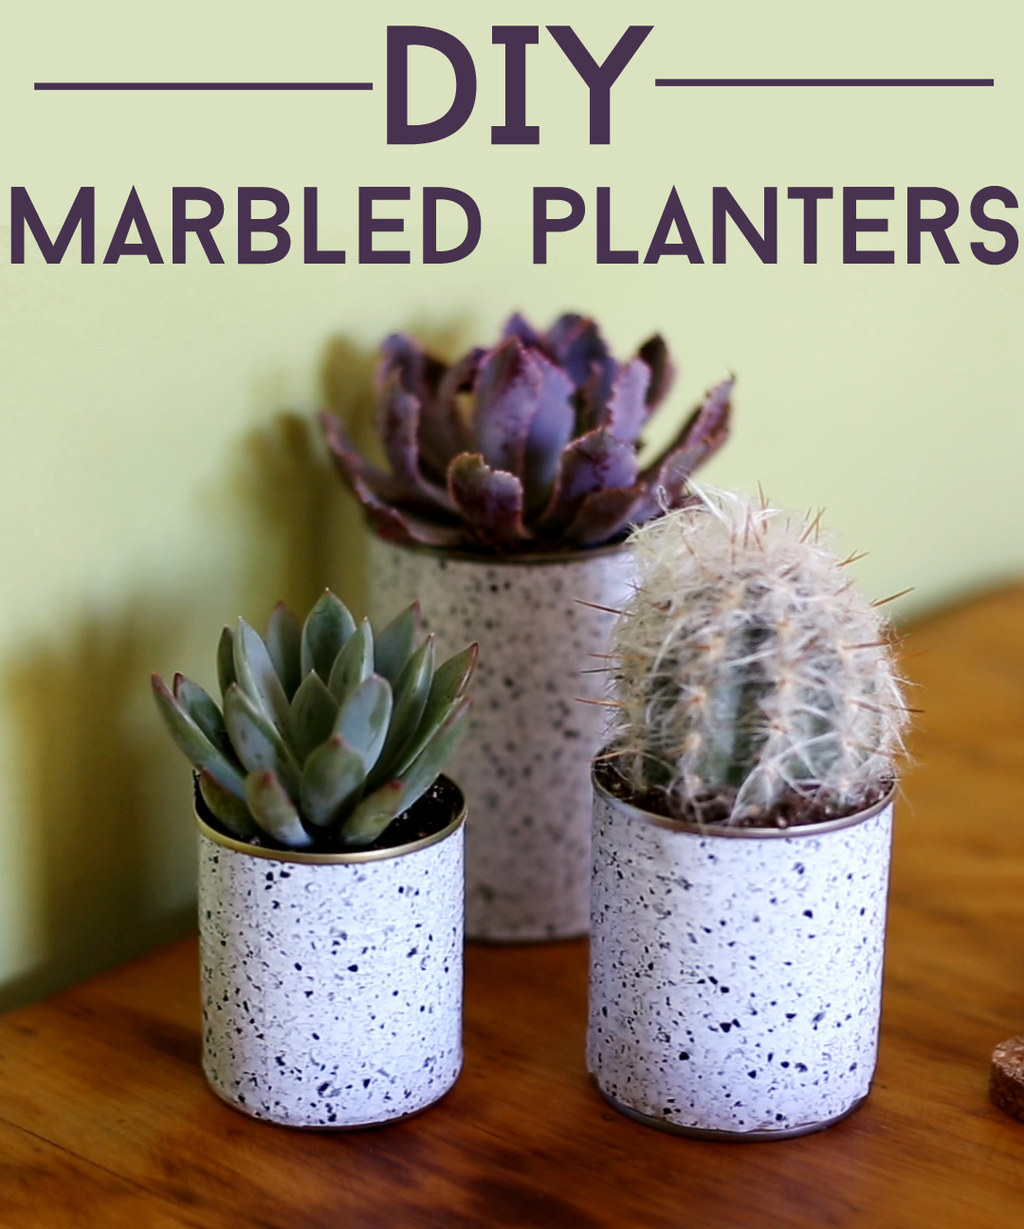 These DIY Marbled Planters Will Give Your Home The Life It Needs